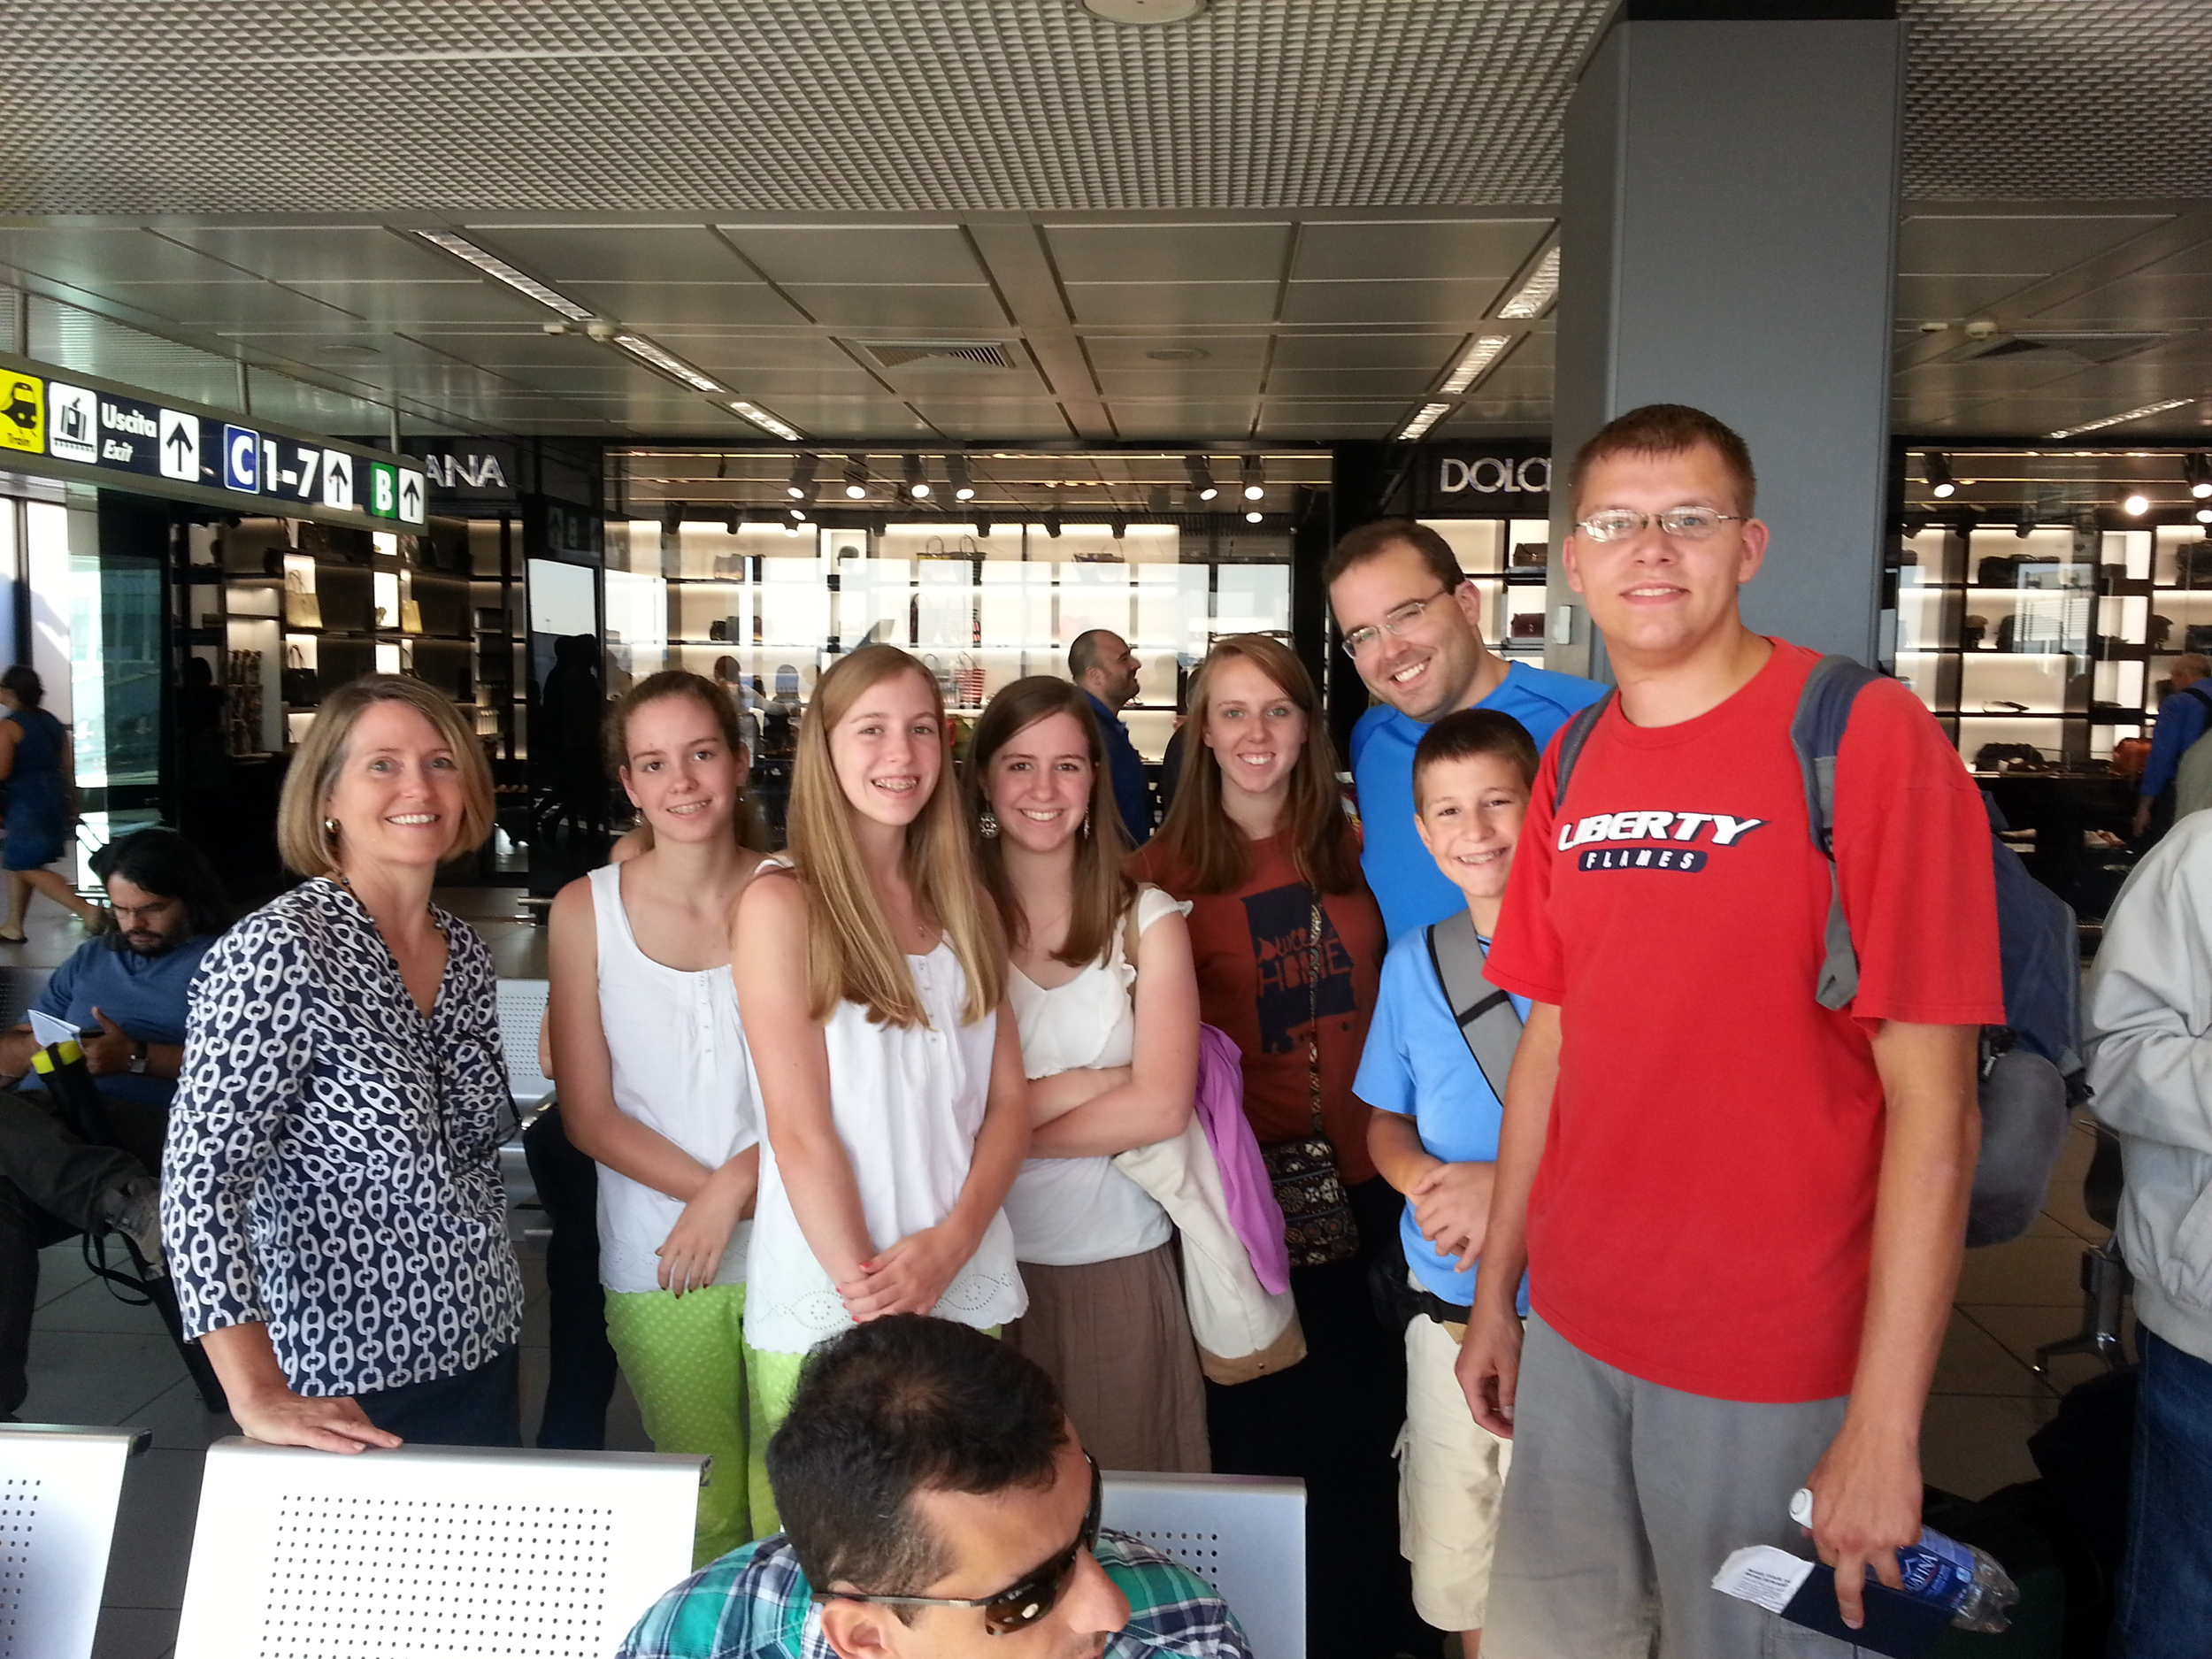 Our team waiting in Rome to depart to Athens